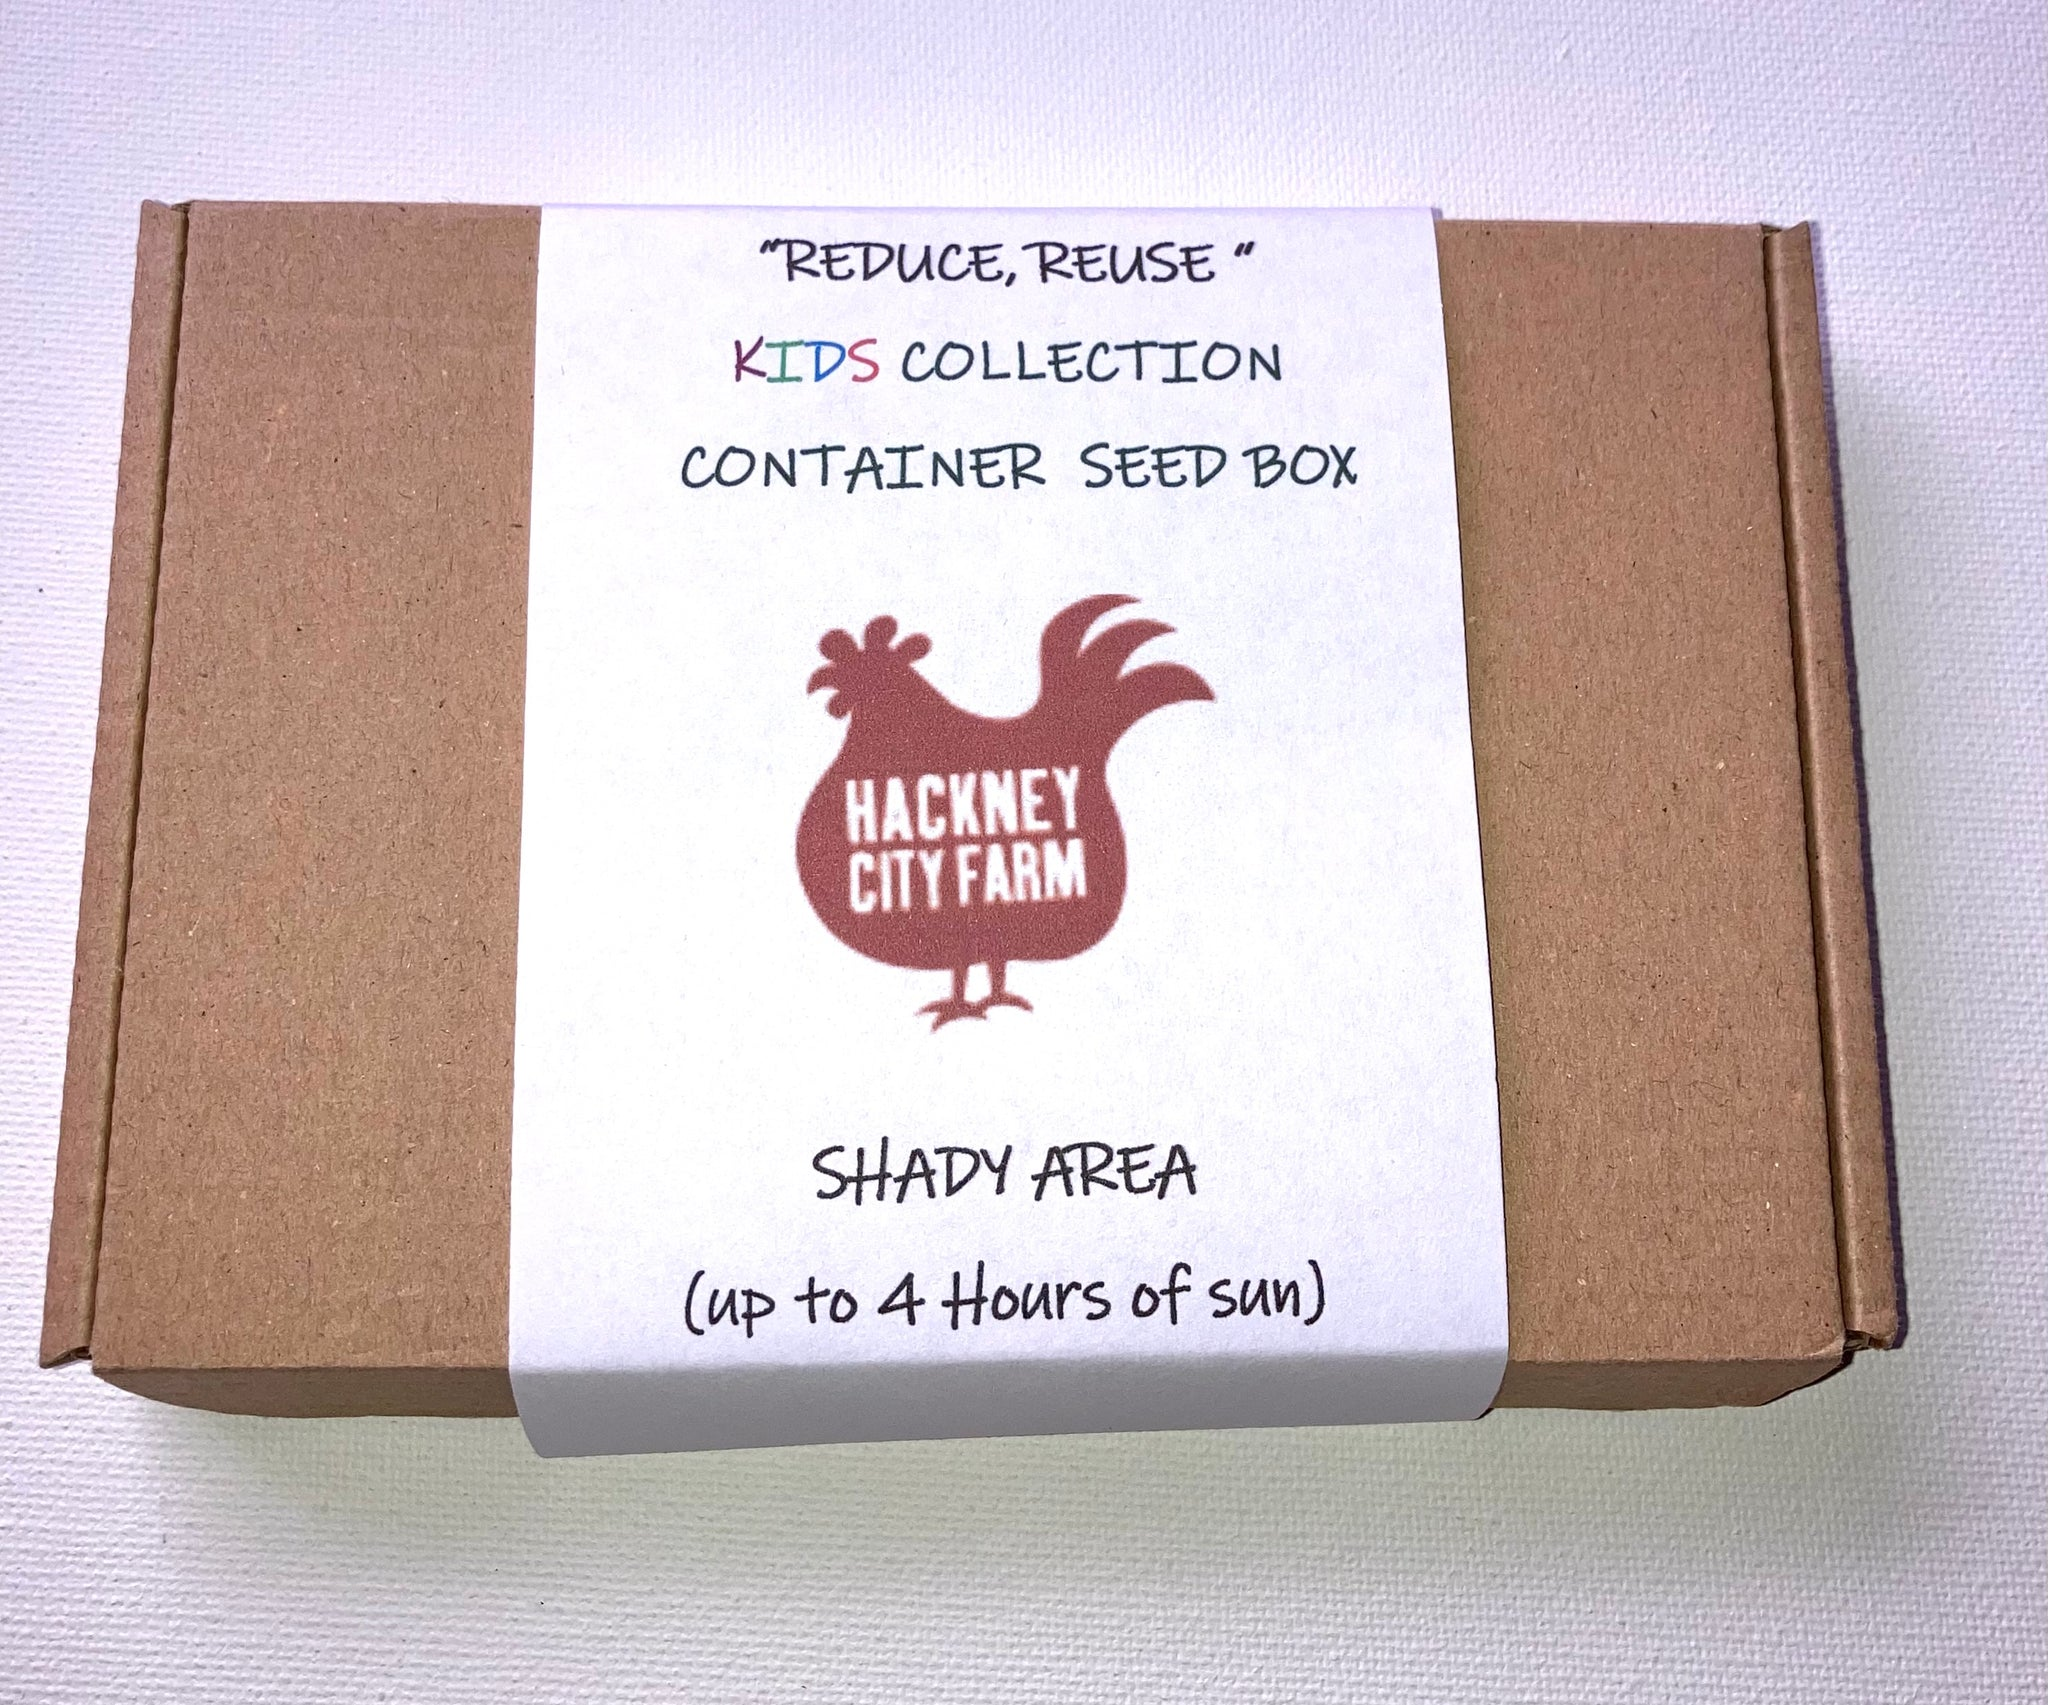 Kids Seed Box Collection